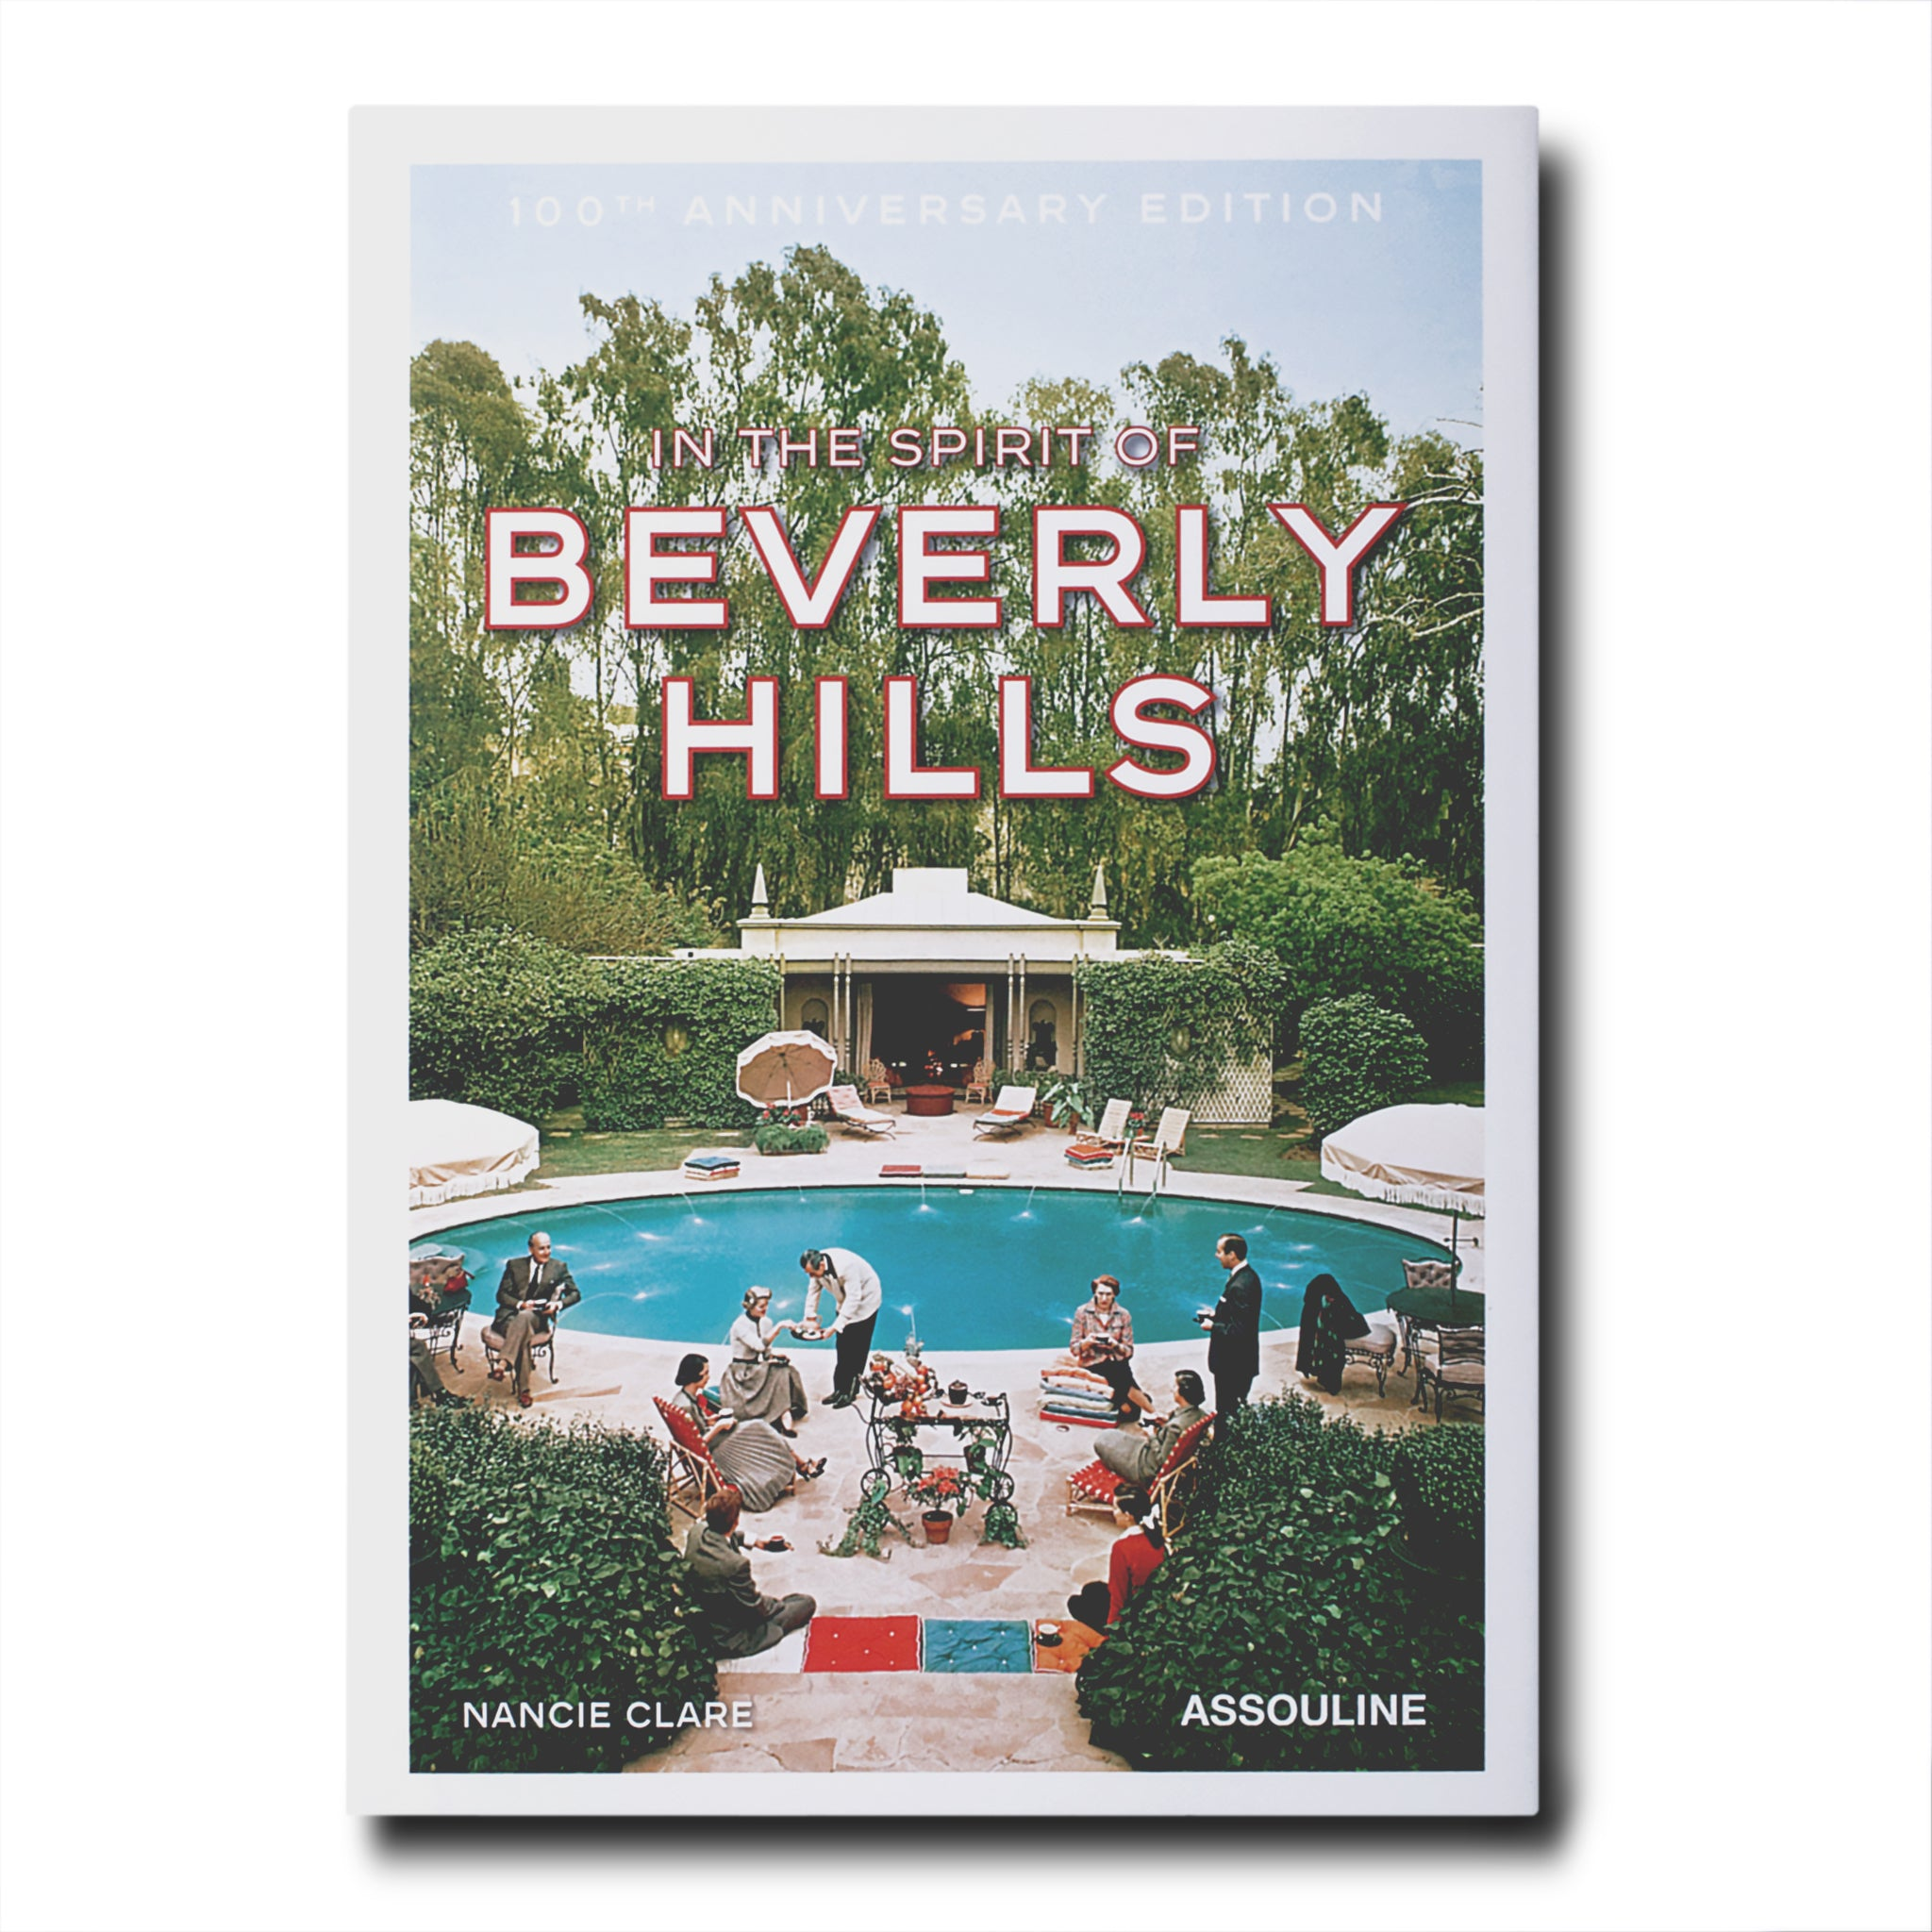 In The Spirit of Beverly Hills